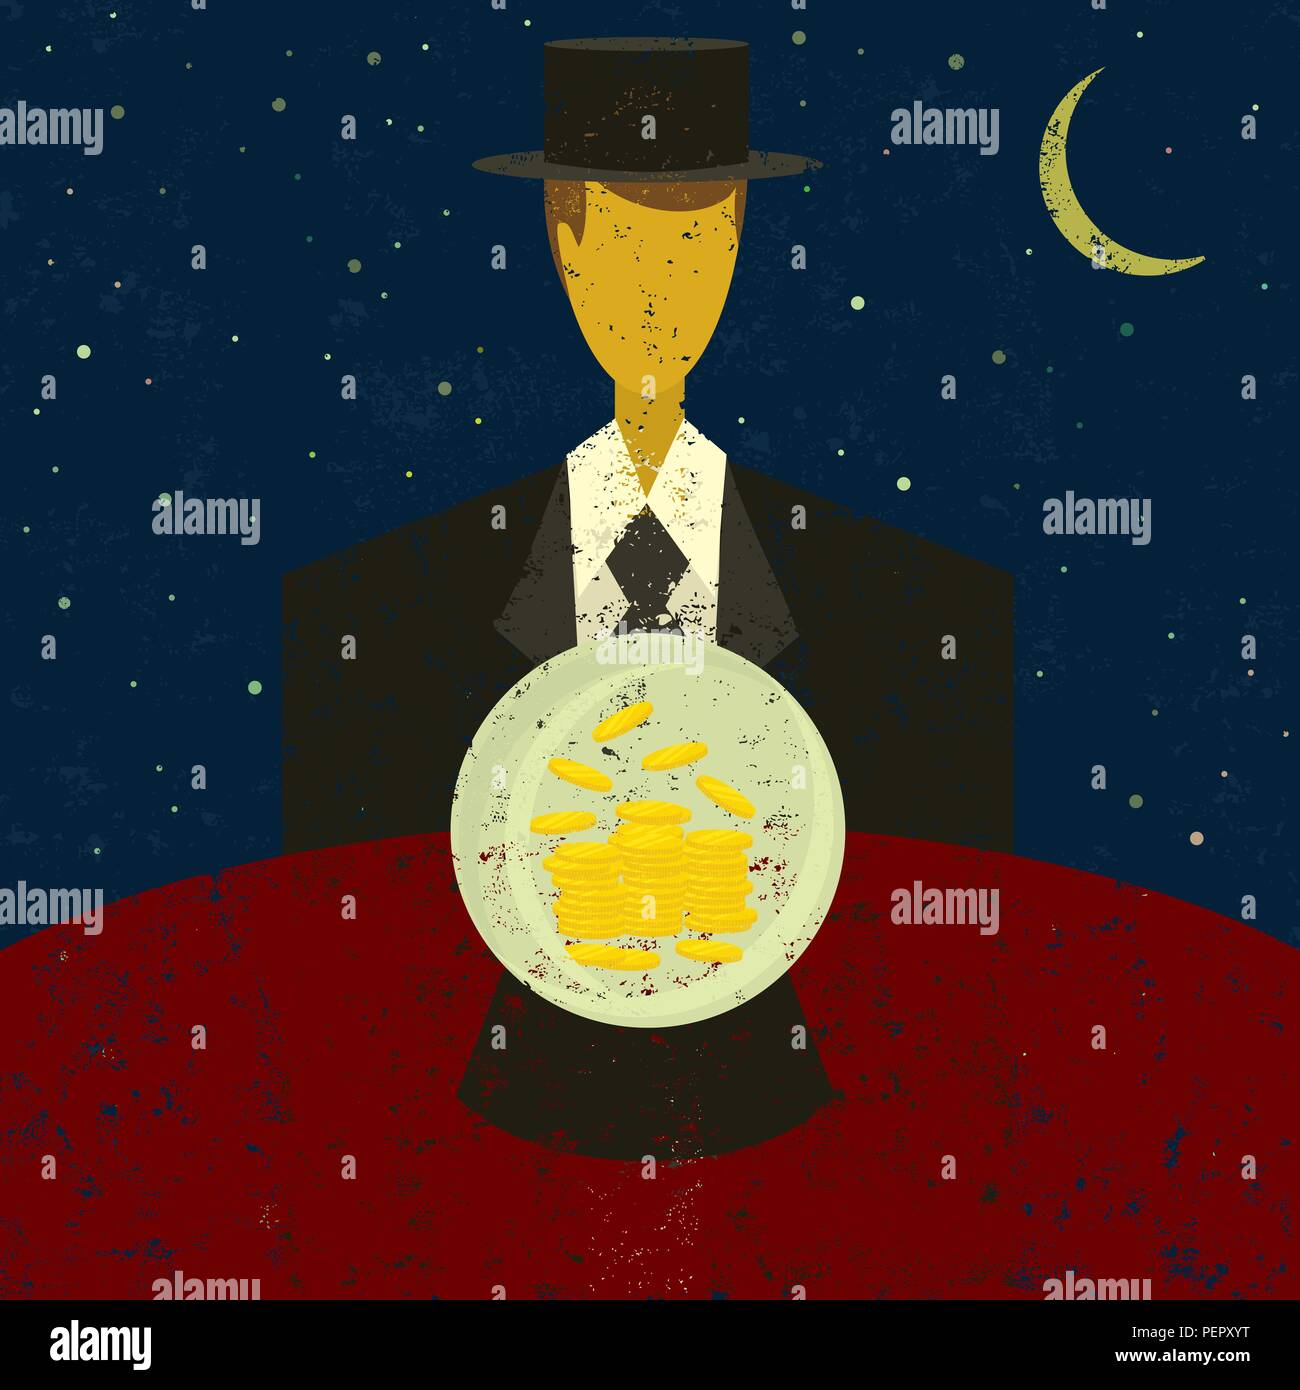 Financial Fortune Teller. A businessman looking into a crystal ball and seeing wealth in his future. - Stock Vector